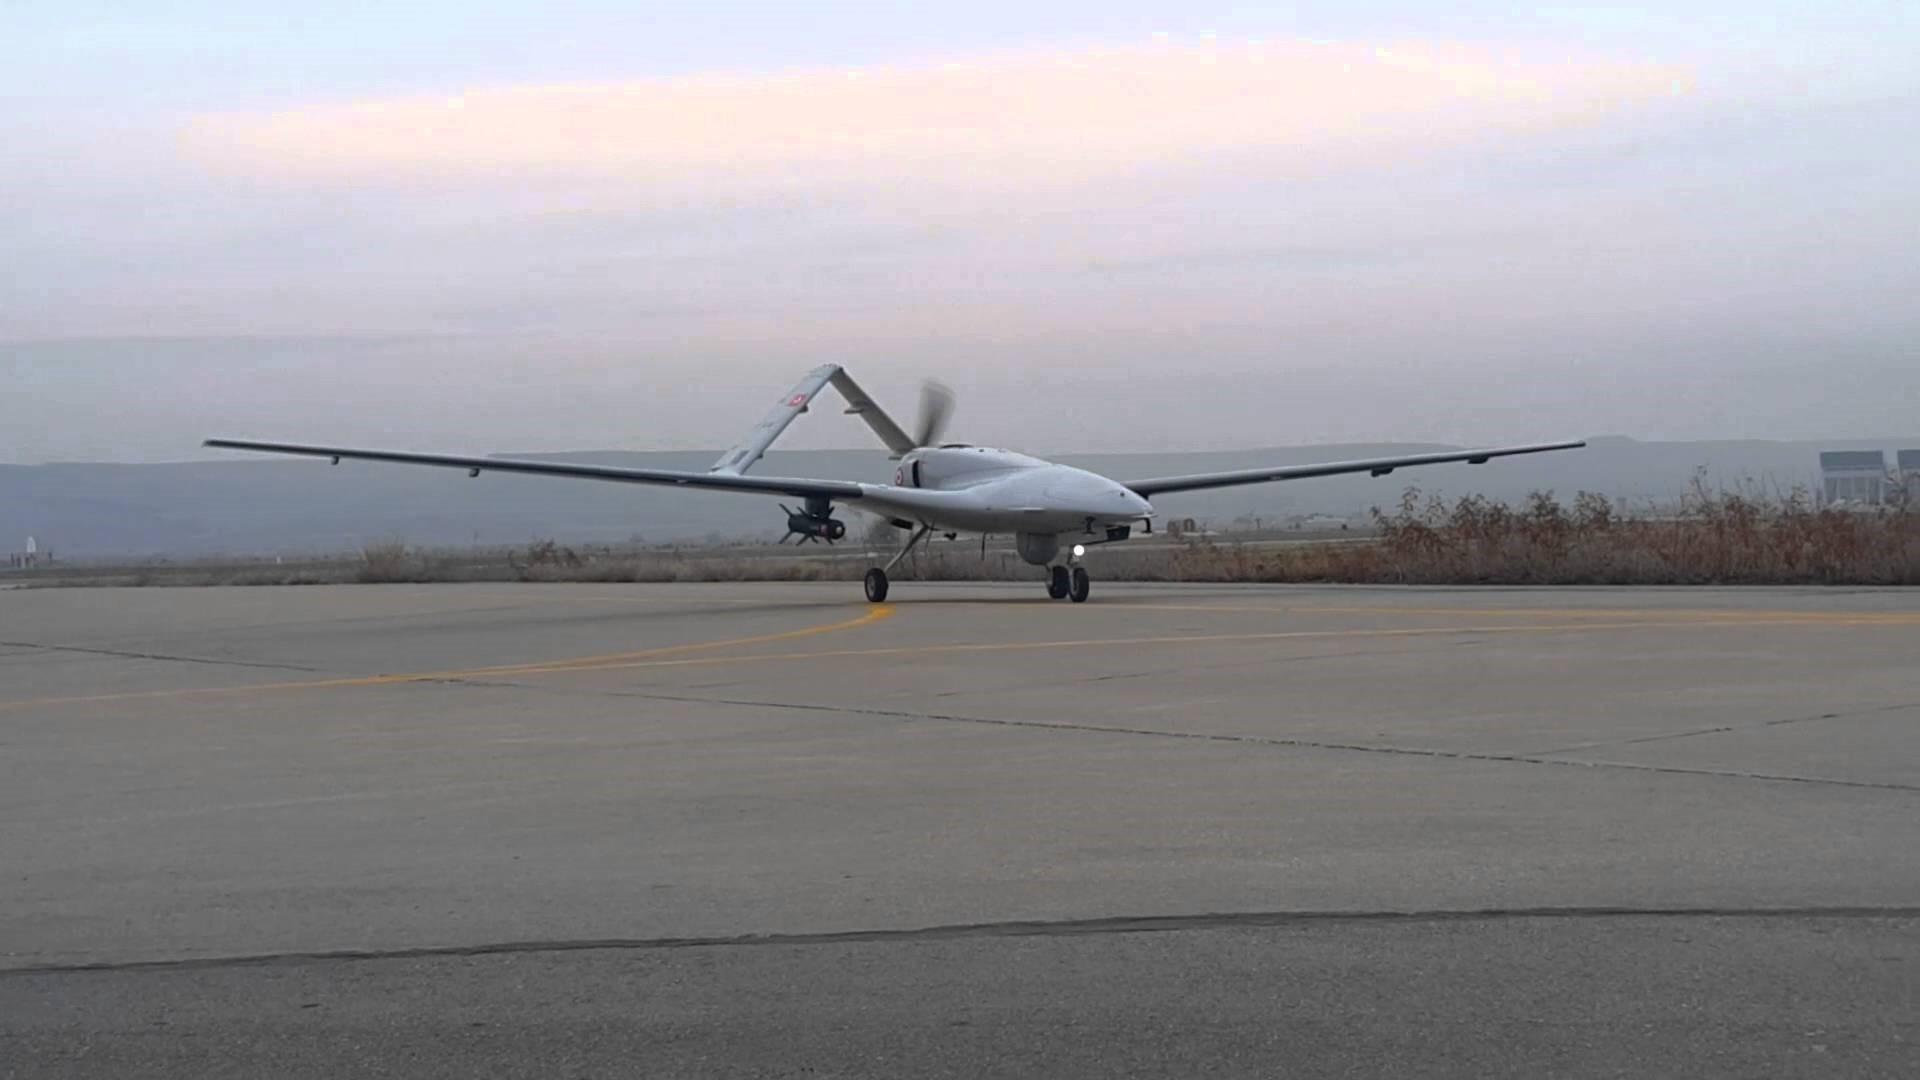 Turkeyu2019s domestically developed Bayraktar TB2 UAV is considered to have greatly contributed to the Afrin operationu2019s success.